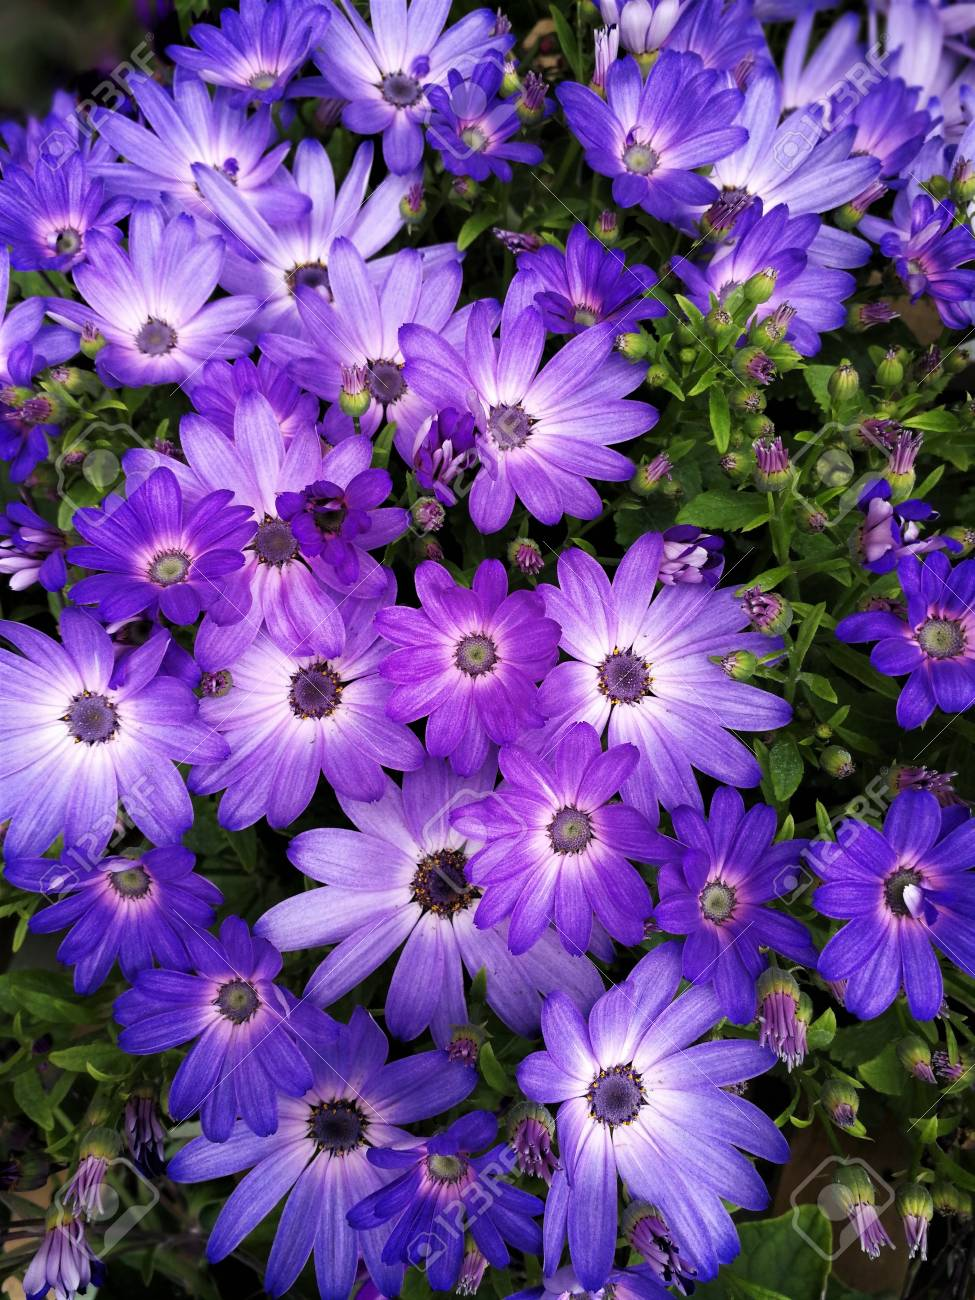 Bright purple osteospermum african daisy flowers stock photo bright purple osteospermum african daisy flowers stock photo 104184364 izmirmasajfo